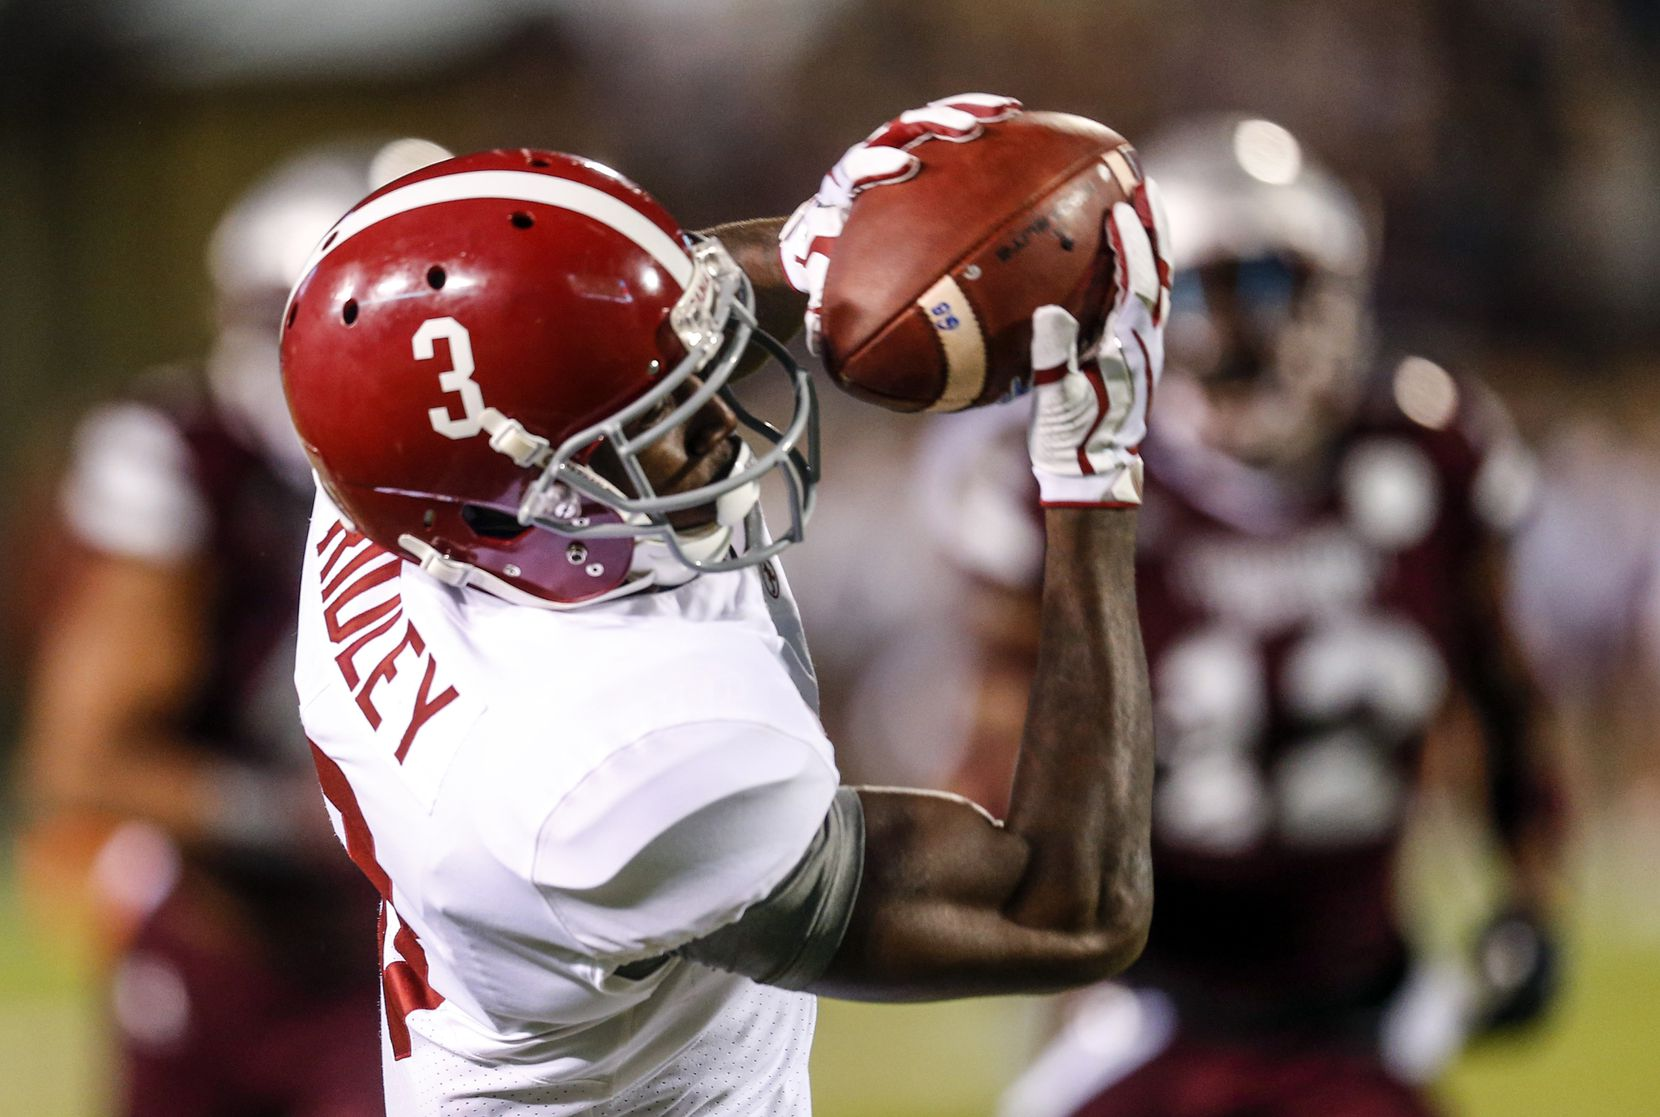 STARKVILLE, MS - NOVEMBER 11:  Calvin Ridley (#3) of the Alabama Crimson Tide catches a pass during the first half of a game against Mississippi State at Davis Wade Stadium on Nov. 11, 2017, in Starkville, Miss. (Photo by Butch Dill/Getty Images)